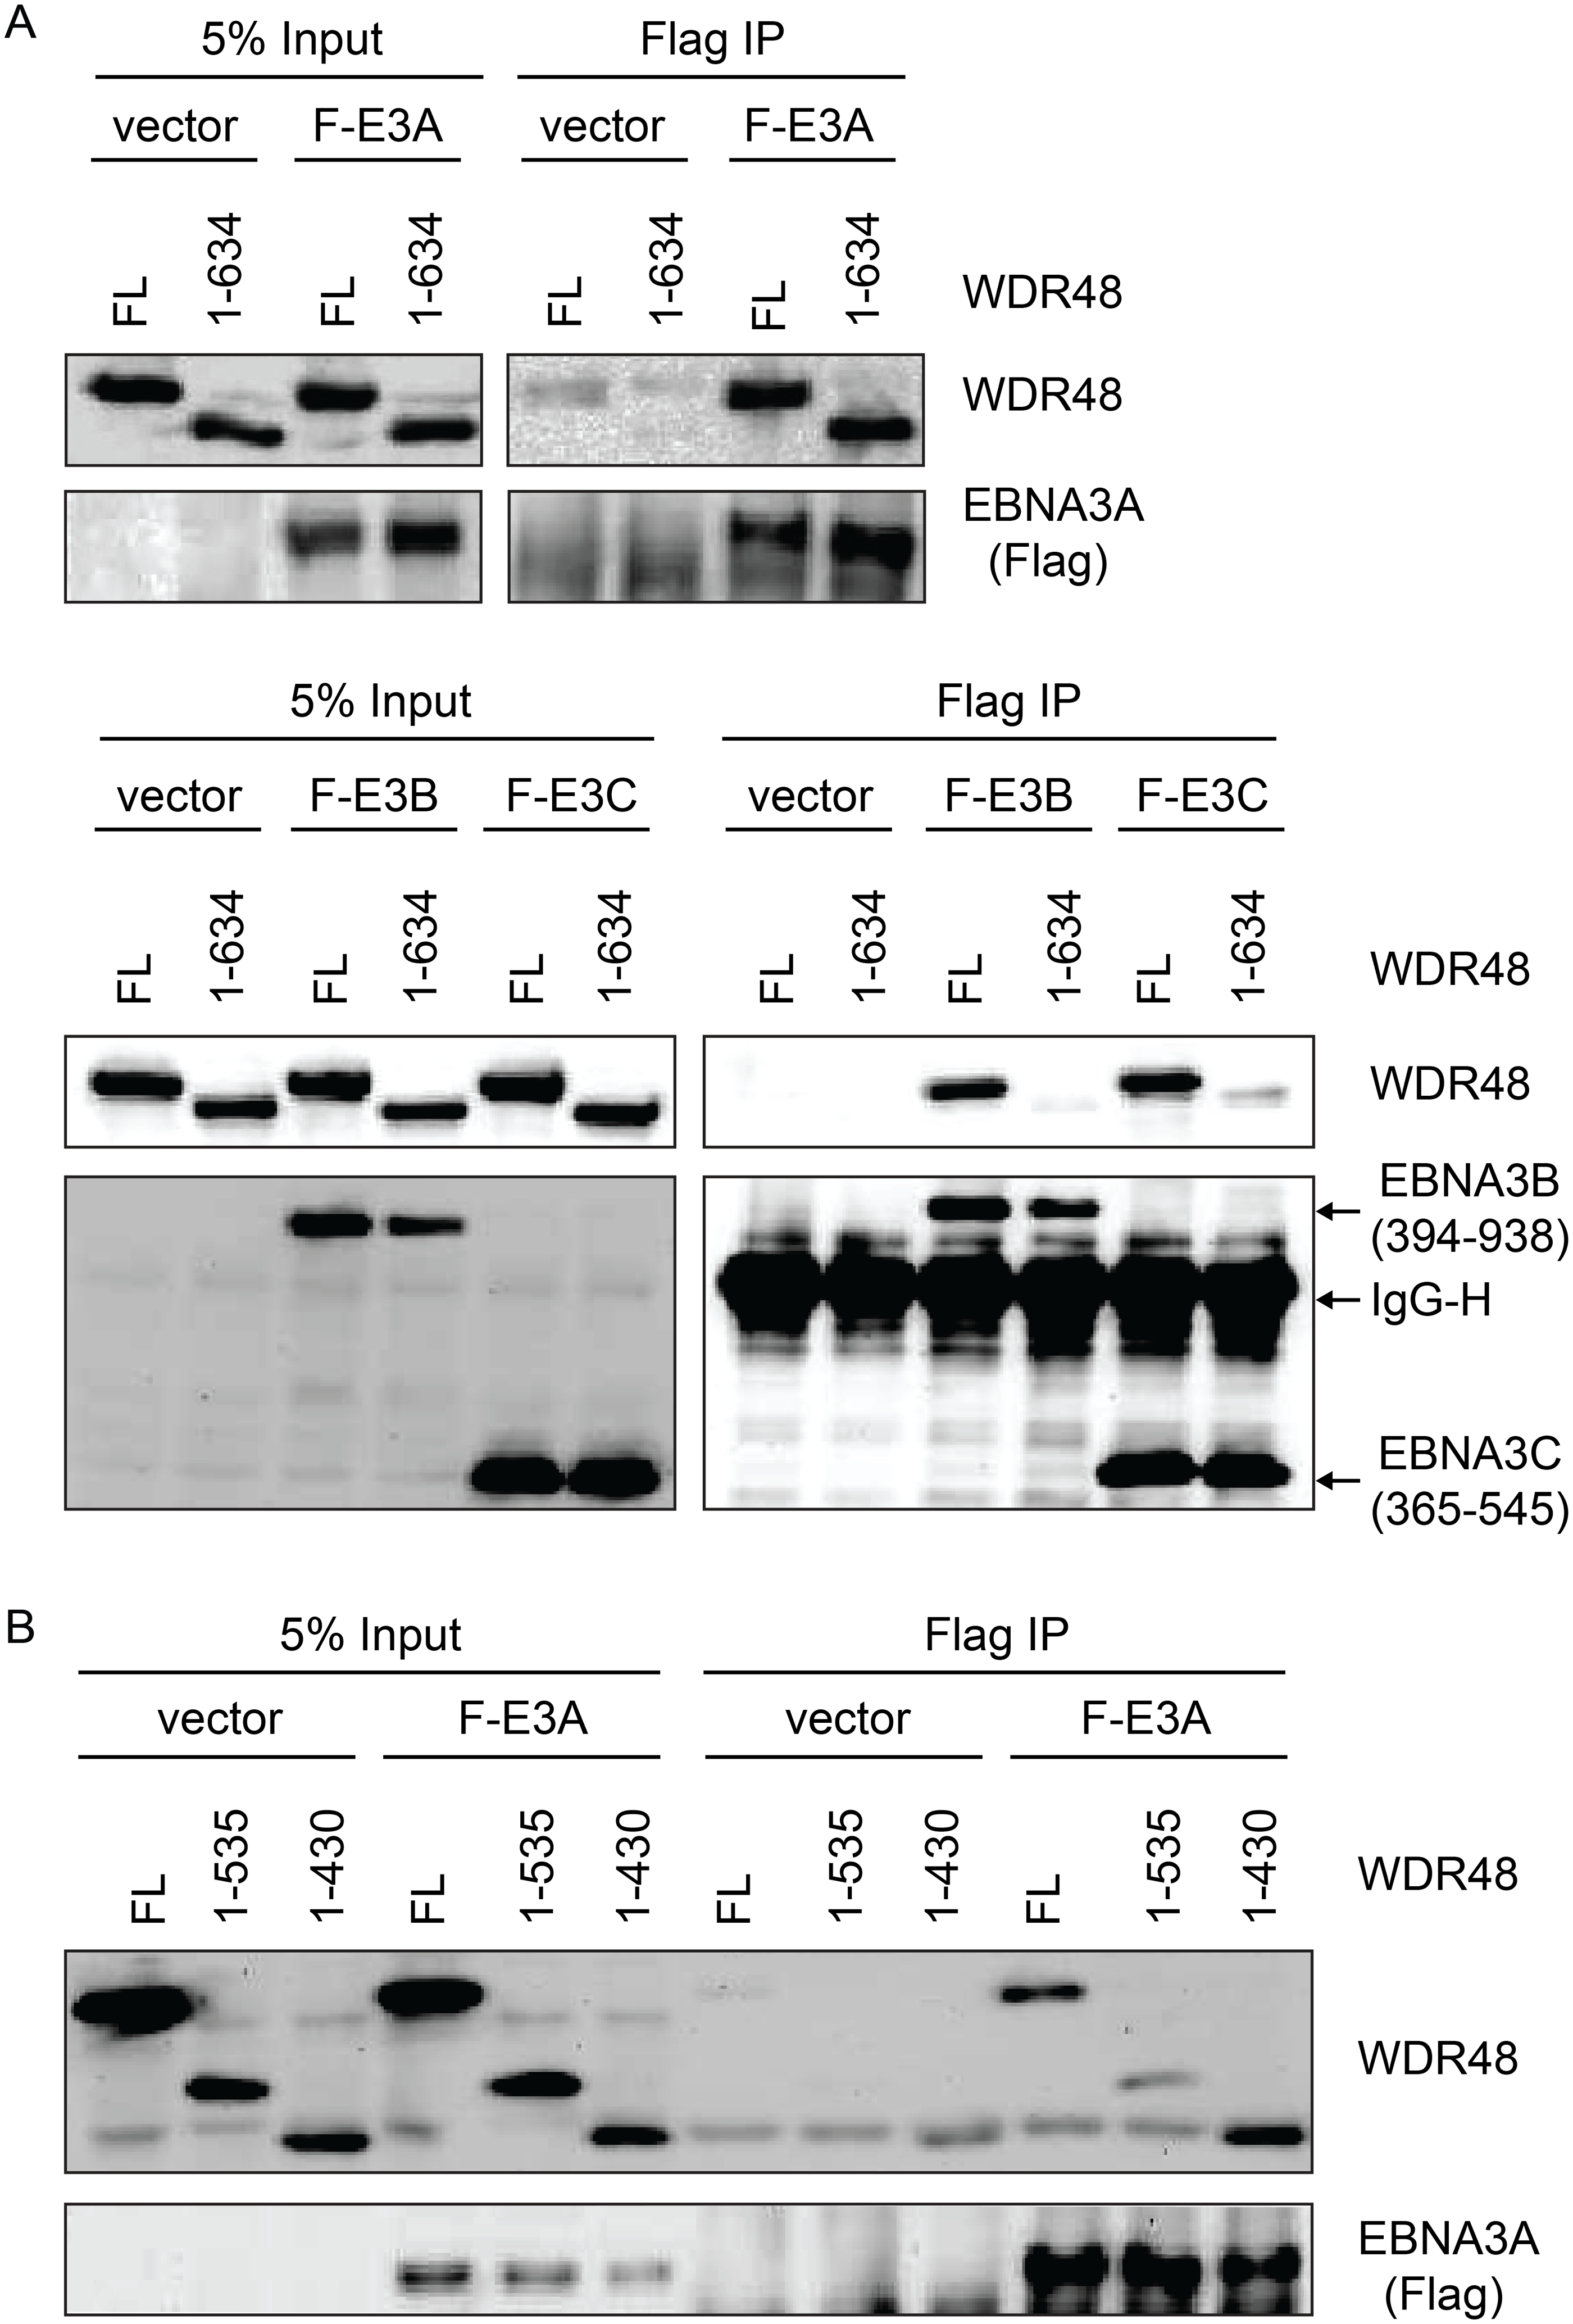 WDR48 SLD2 mediates binding to EBNA3B and EBNA3C, but is not required for EBNA3A binding.